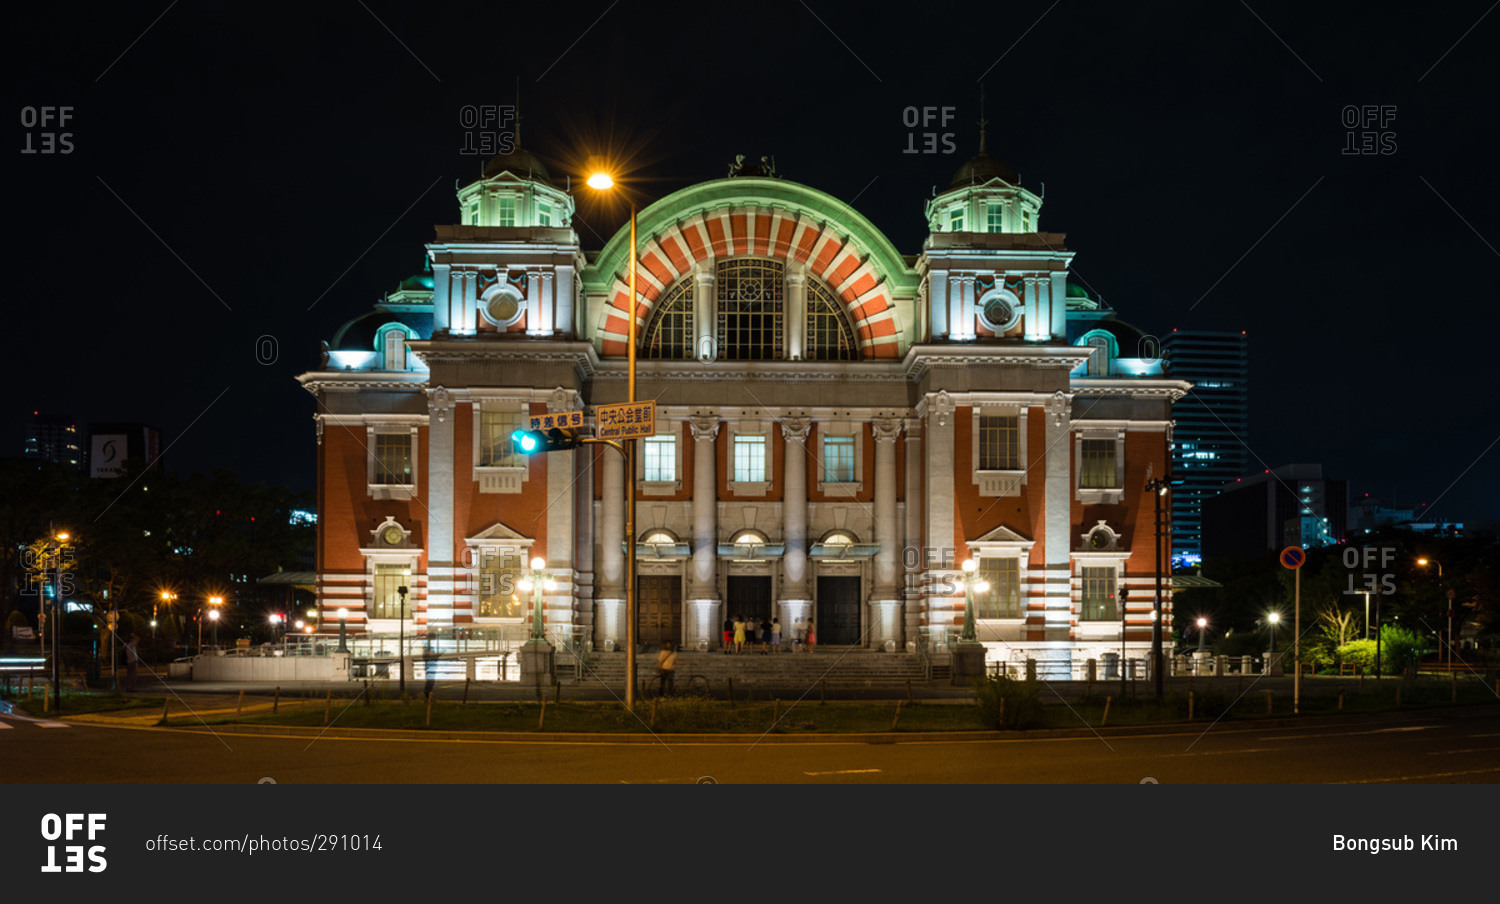 Offset Shares The Most Important Thing He S Been Working: September 12, 2015: Nakanoshima Osaka Central Public Hall